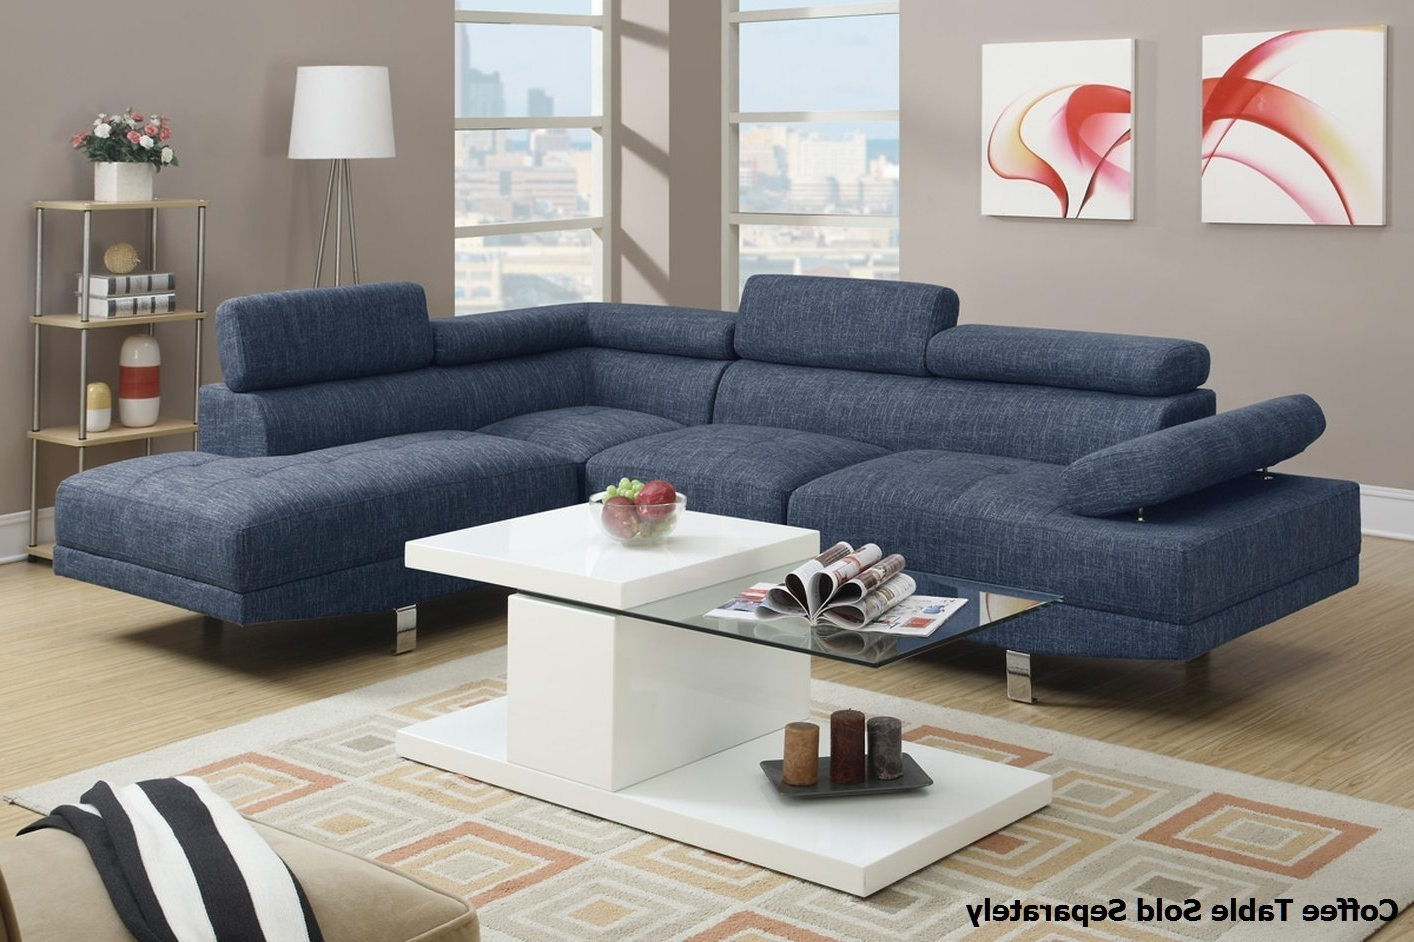 Sofas Centerectionalofa Blue Velvet Denim Navy Houston Texas With Regard To Well Known Sectional Sofas In Houston Tx (View 12 of 15)